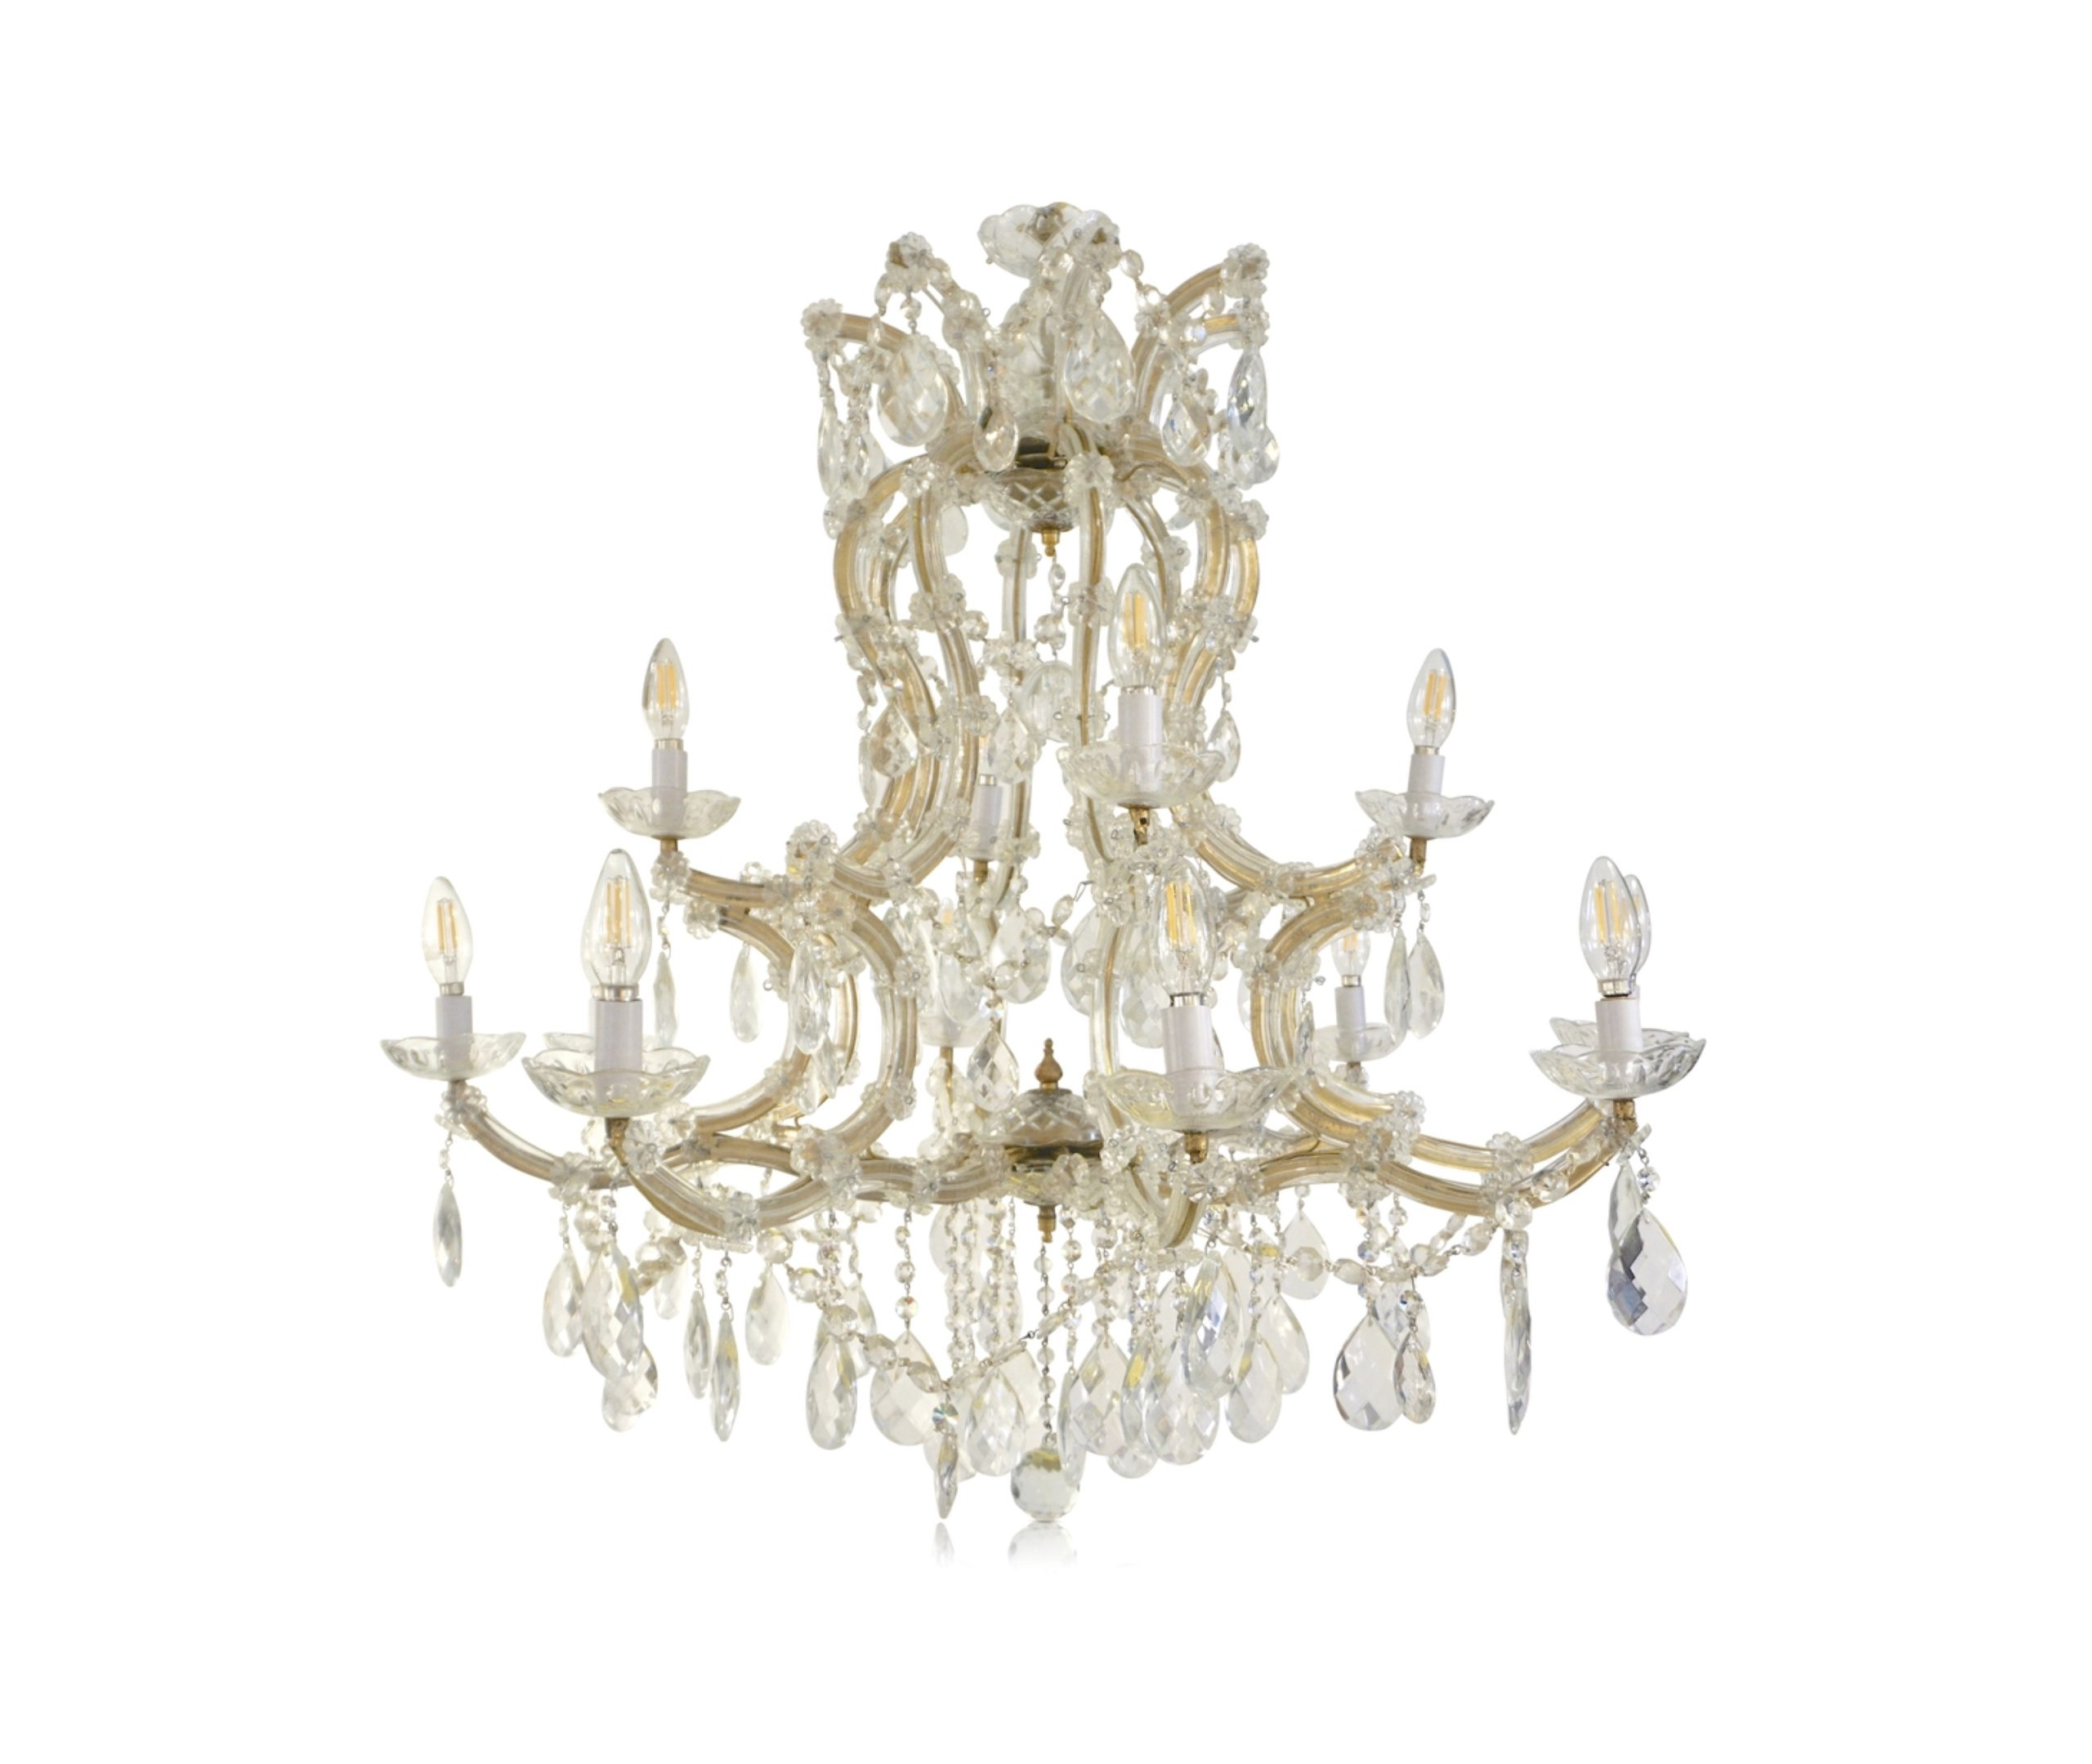 cosulich_interiors_and_antiques_products_new_york_design_1940s_italian_antique_baroque_revival_crystal_gilded_chandelier-scaled-1